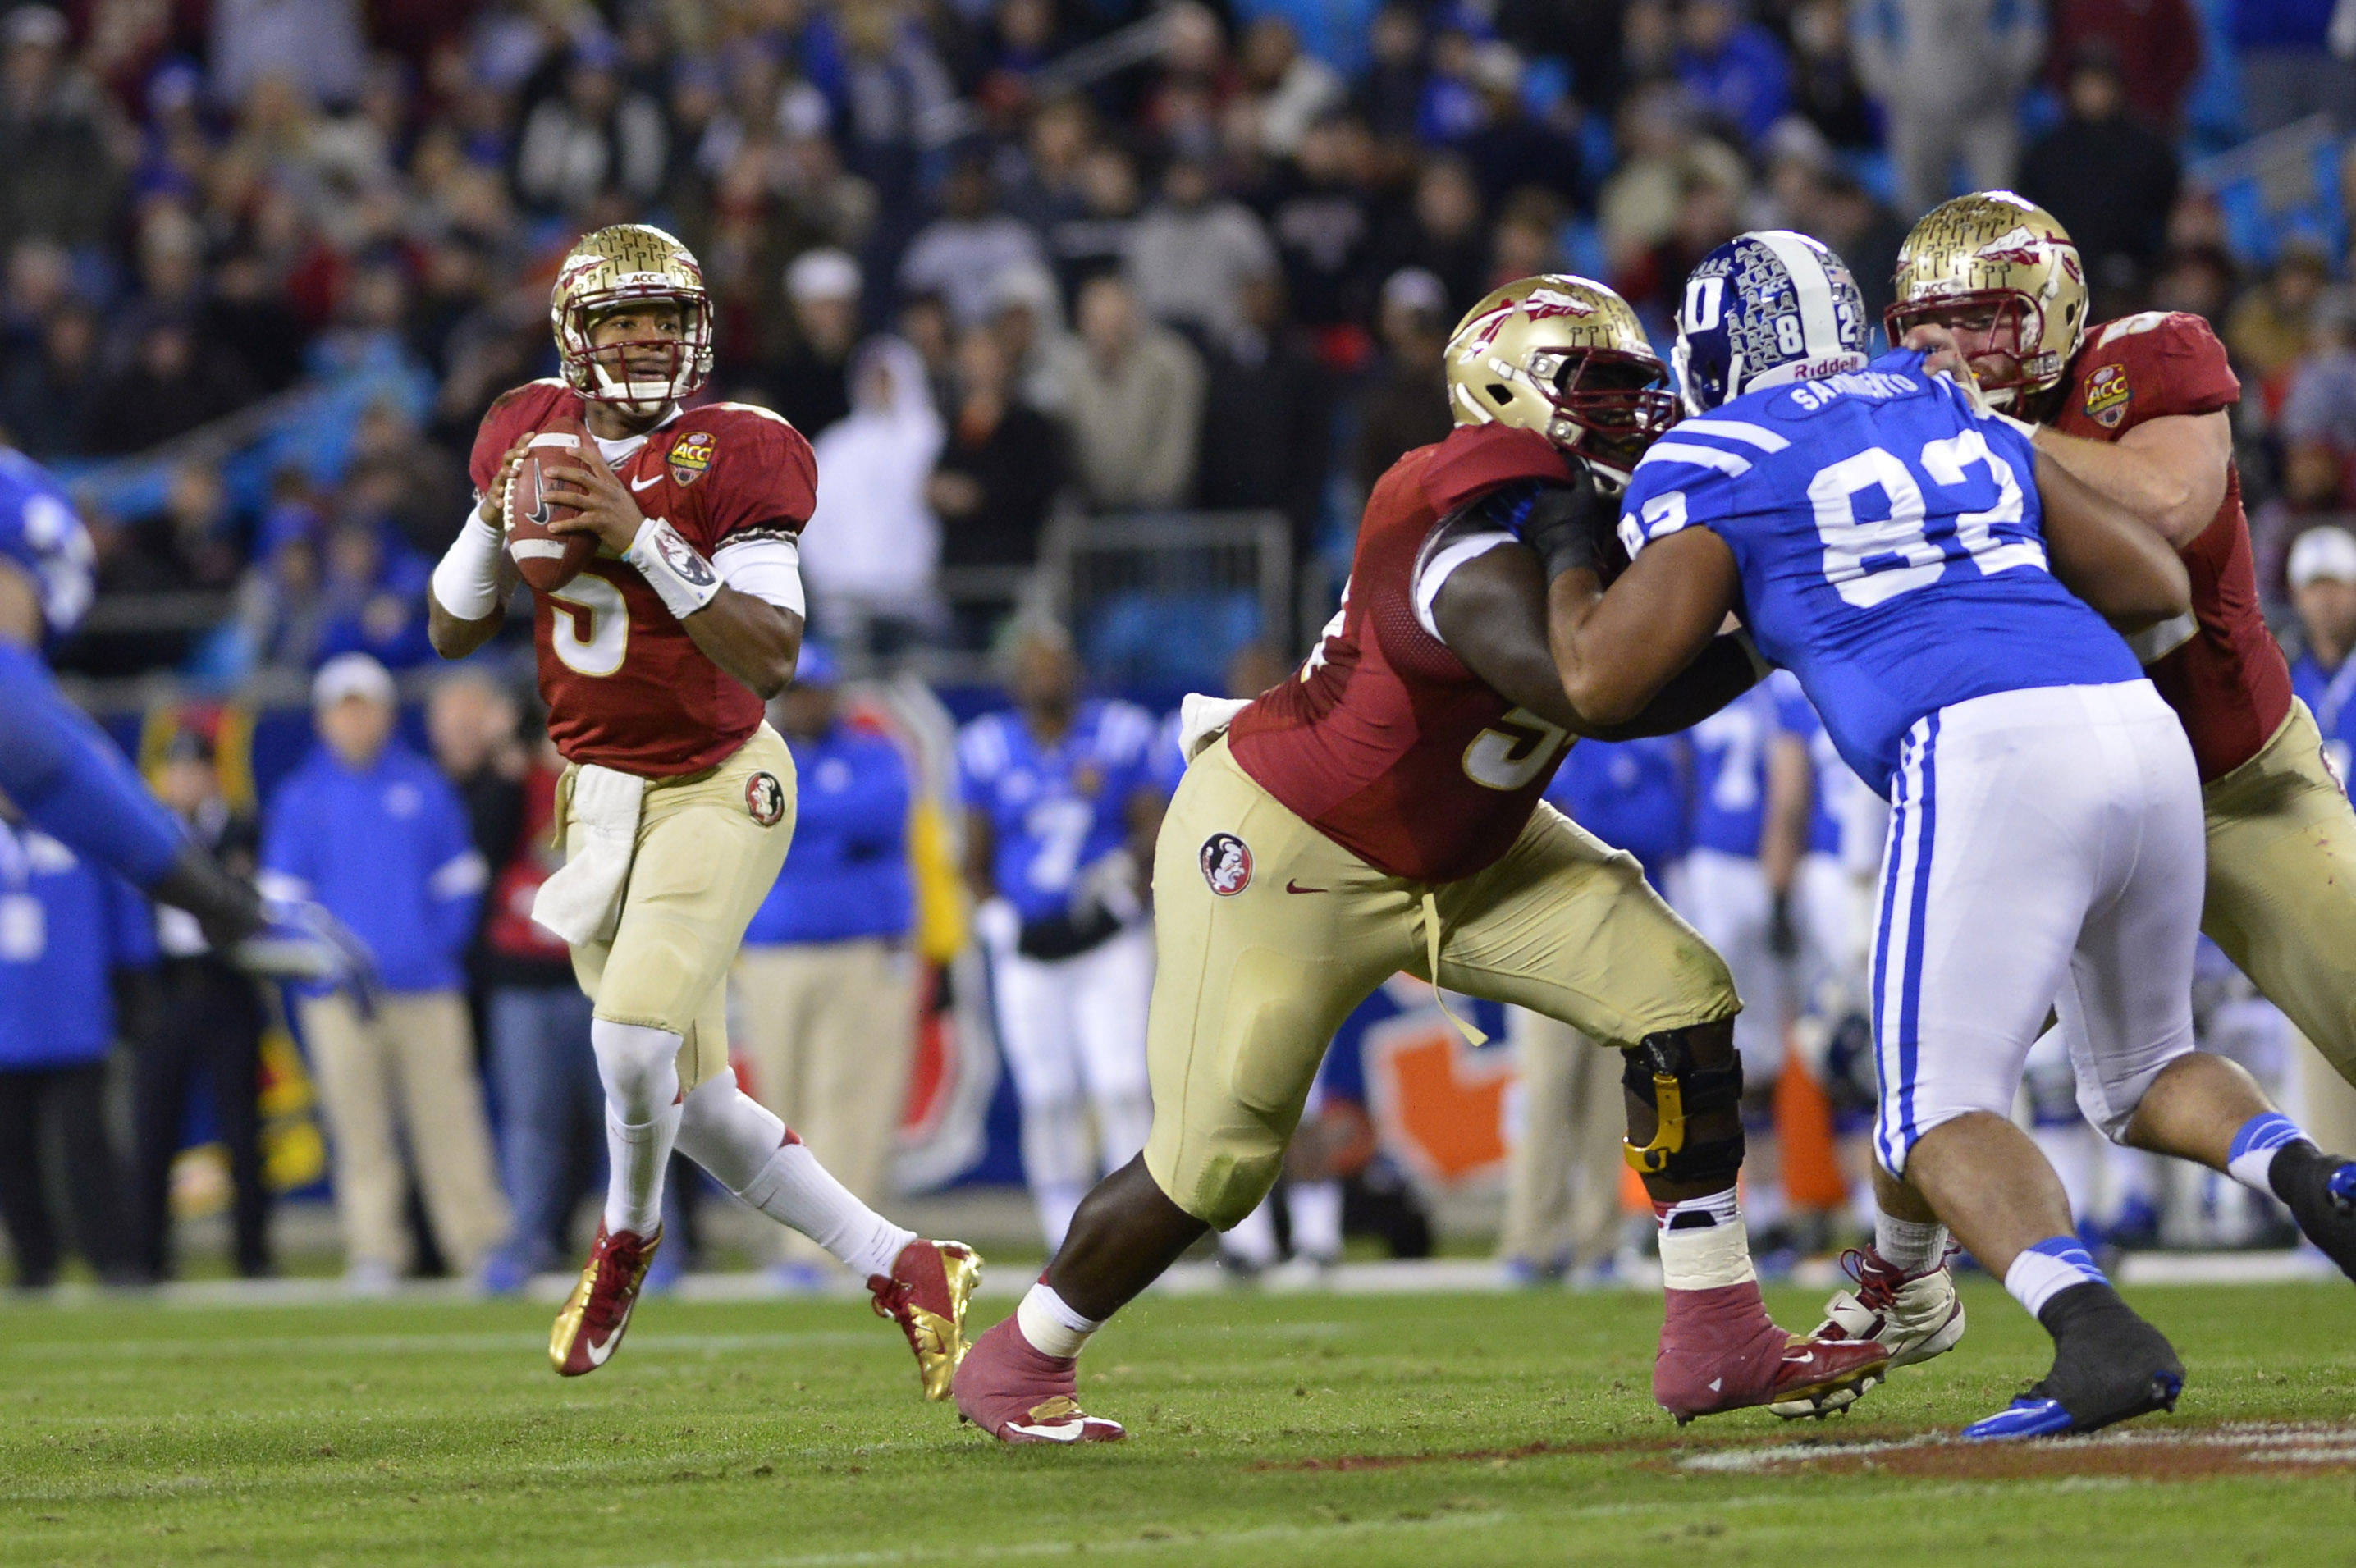 Dec 7, 2013; Charlotte, NC, USA; Florida State Seminoles quarterback Jameis Winston (5) looks to pass Duke Blue Devils defensive tackle Sydney Sarmiento (82) defends in the second quarter at Bank of America Stadium. Mandatory Credit: Bob Donnan-USA TODAY Sports